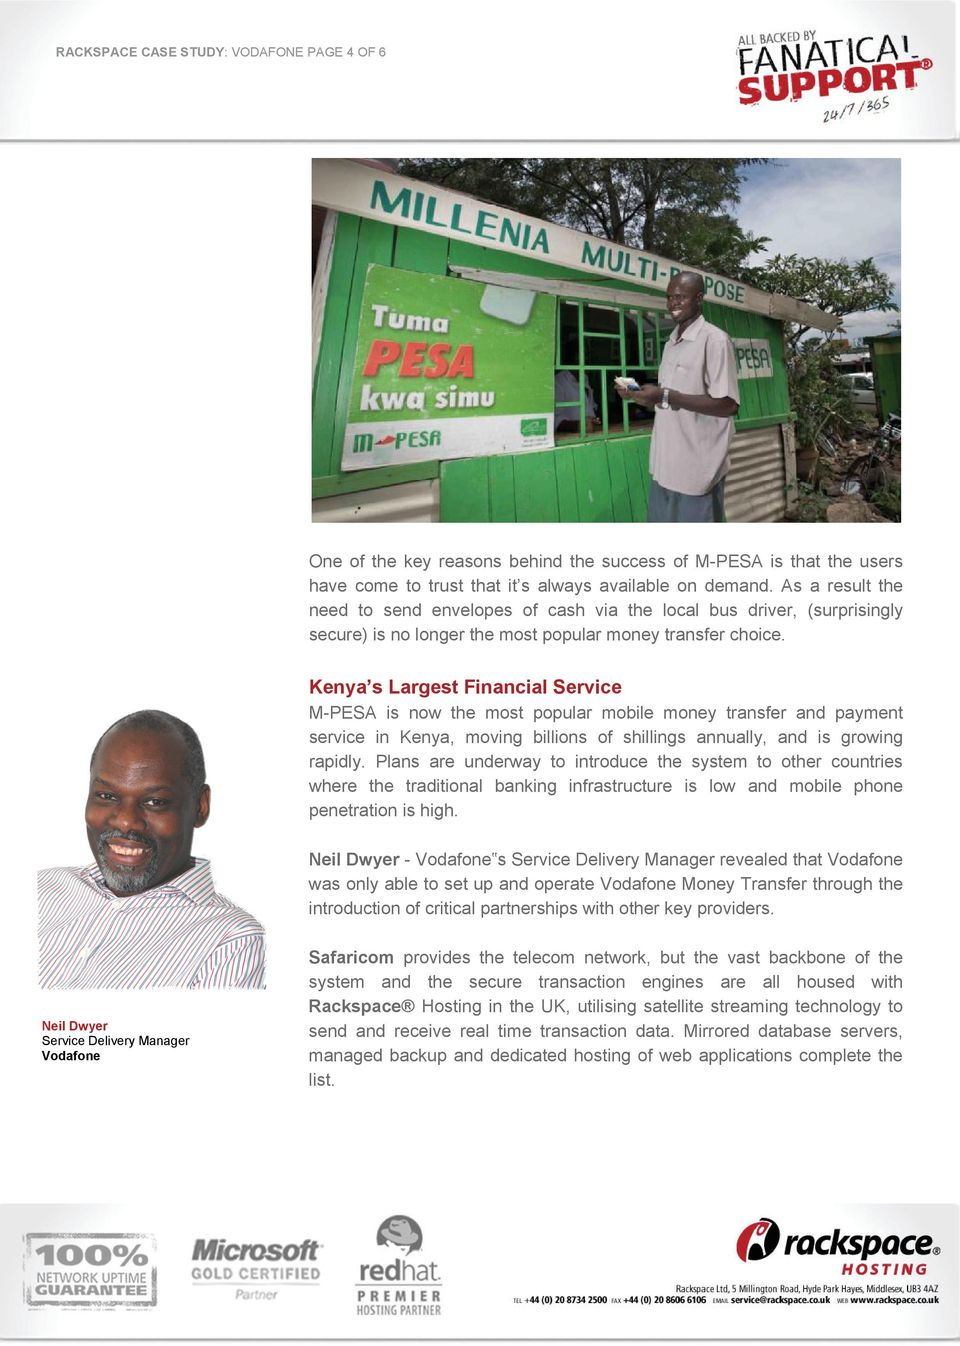 Kenya s Largest Financial Service M-PESA is now the most popular mobile money transfer and payment service in Kenya, moving billions of shillings annually, and is growing rapidly.